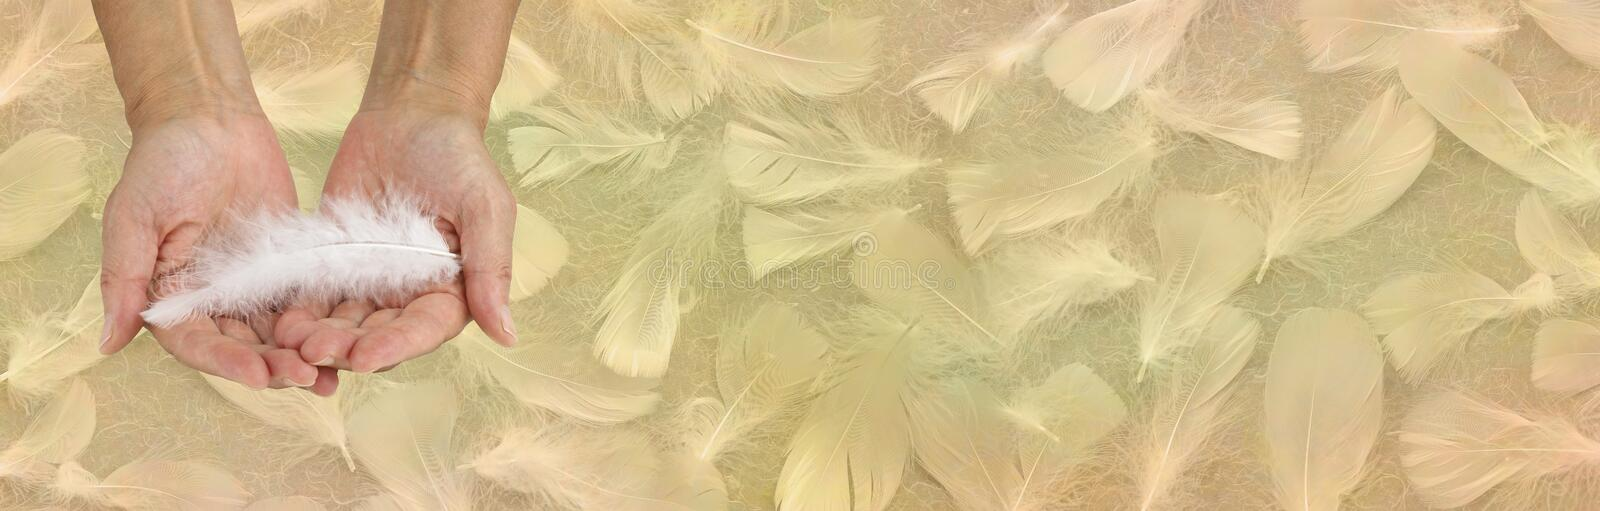 Receiving Angelic help golden feather background banner. Female open hands gently holding a single white feather against a wide soft gold coloured background of stock image